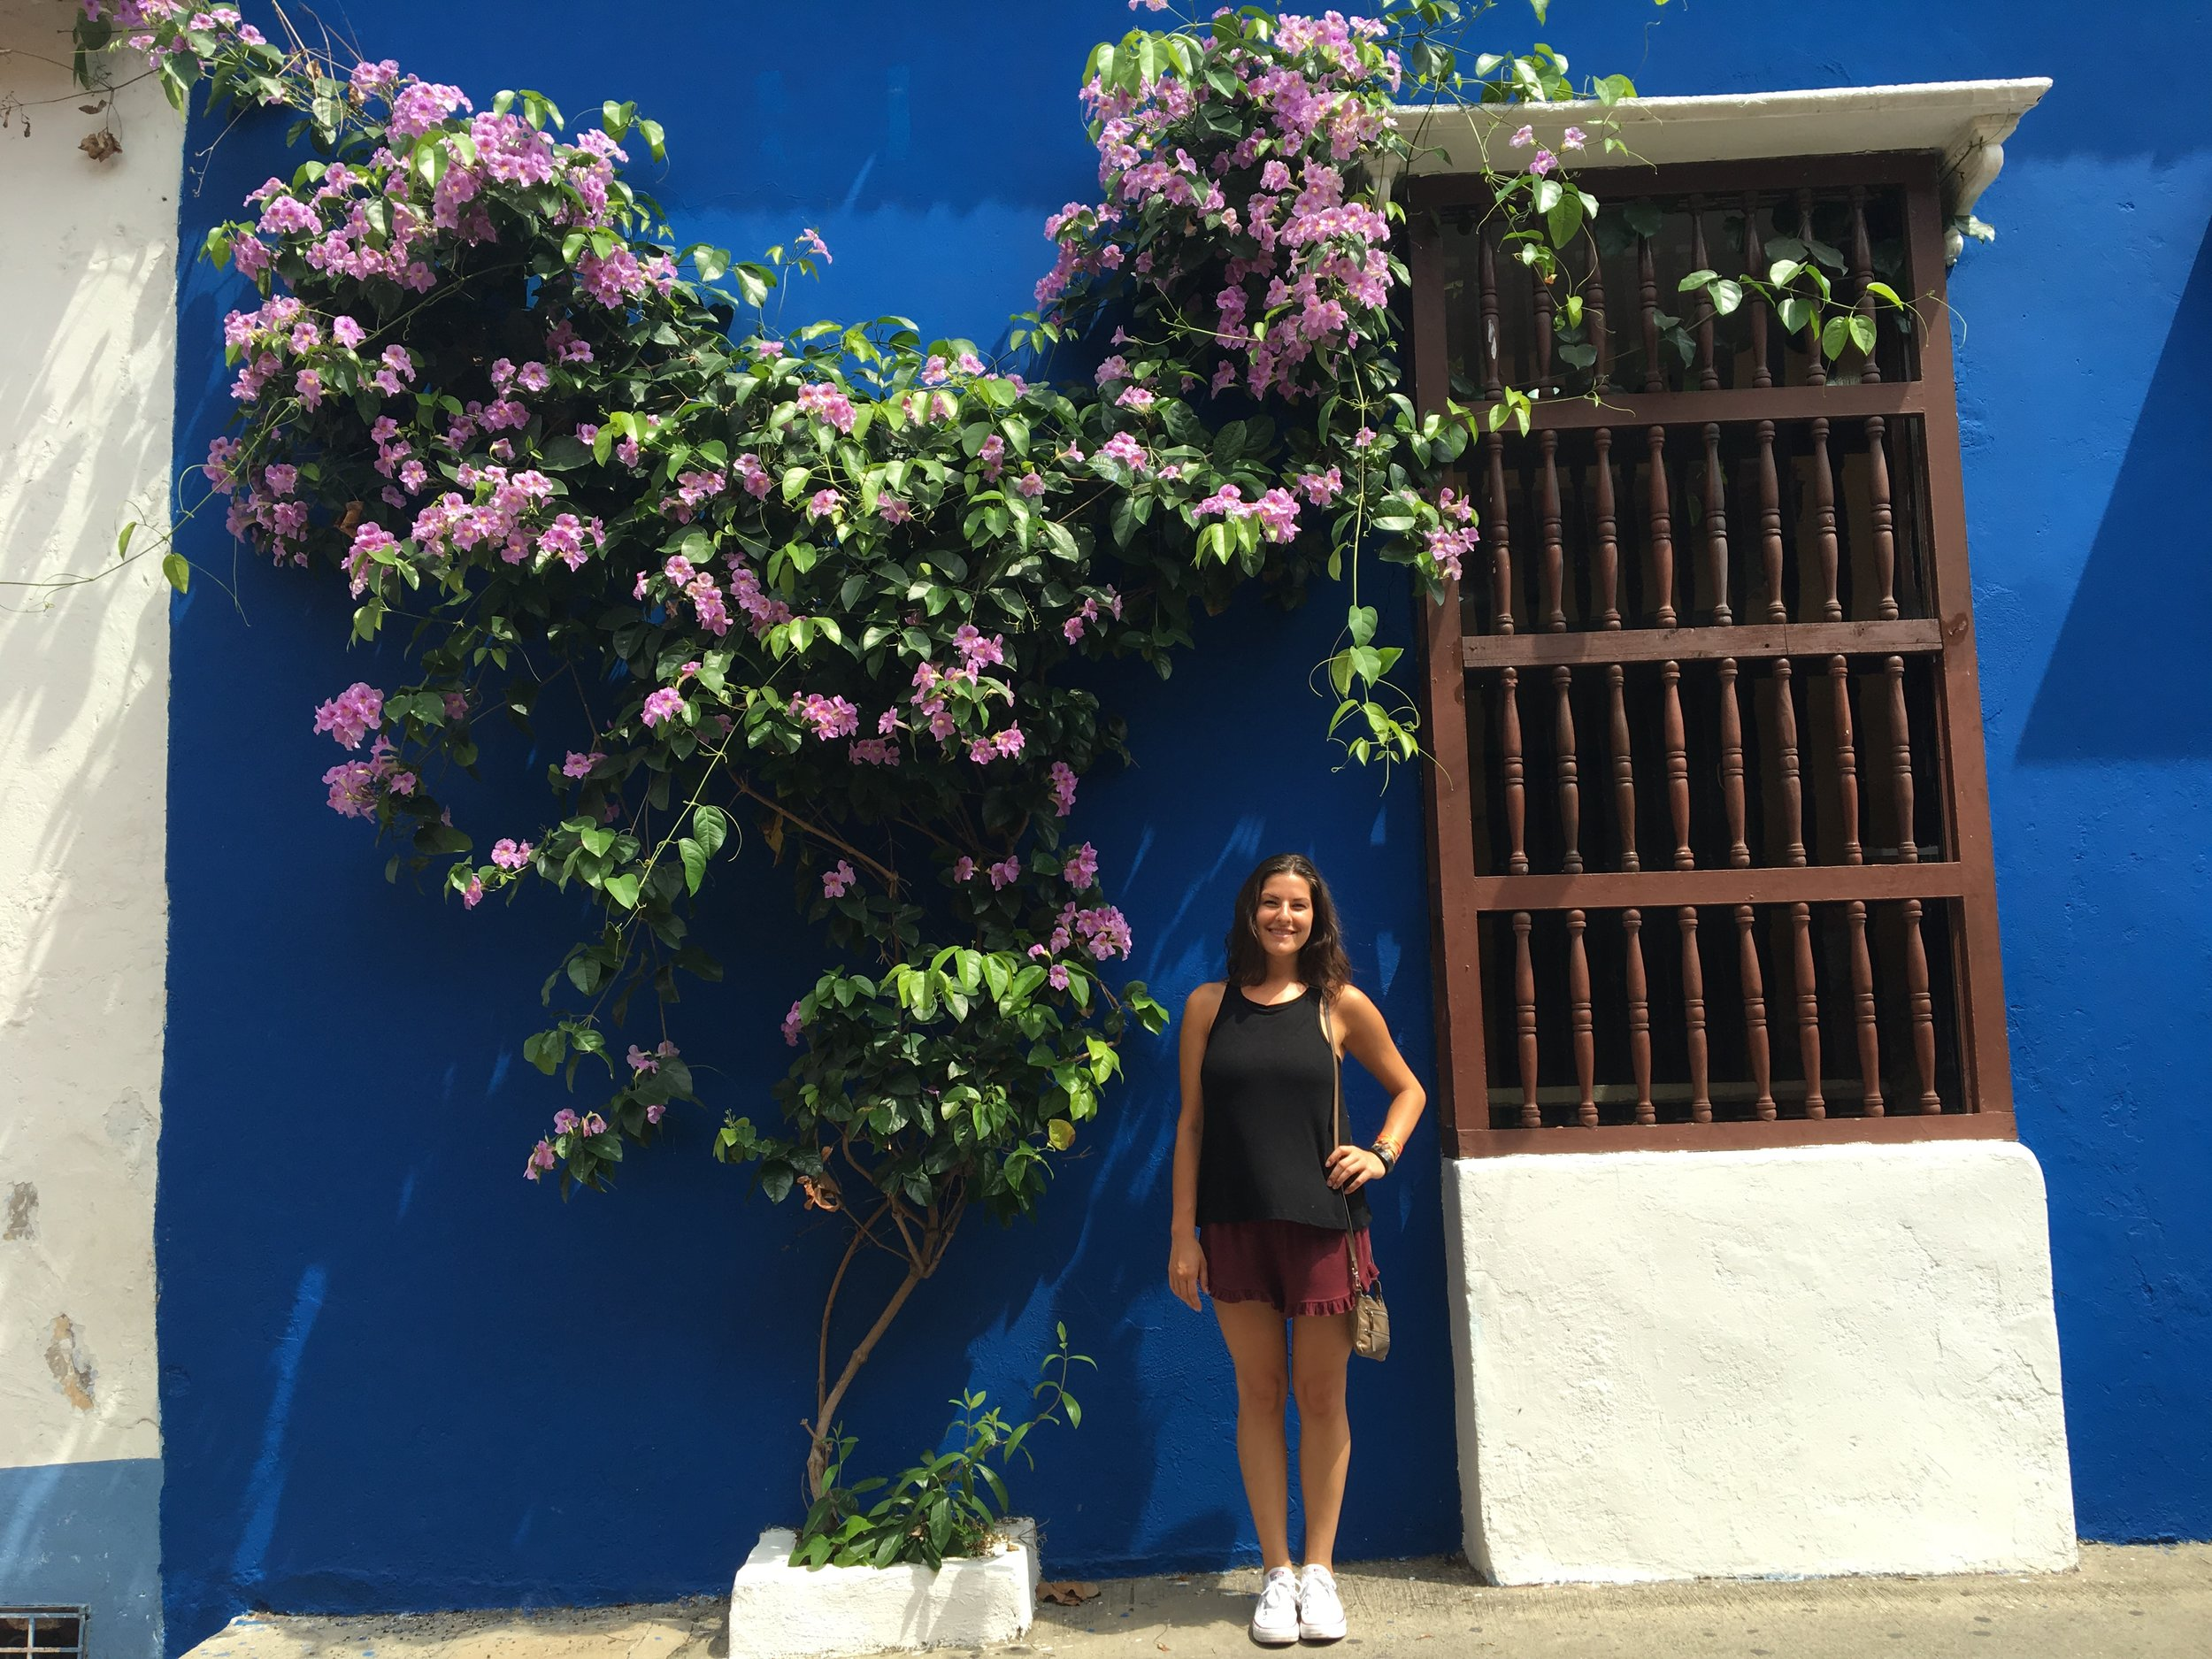 I cant tell you how joyous these colorful walls and huge plants made me !!